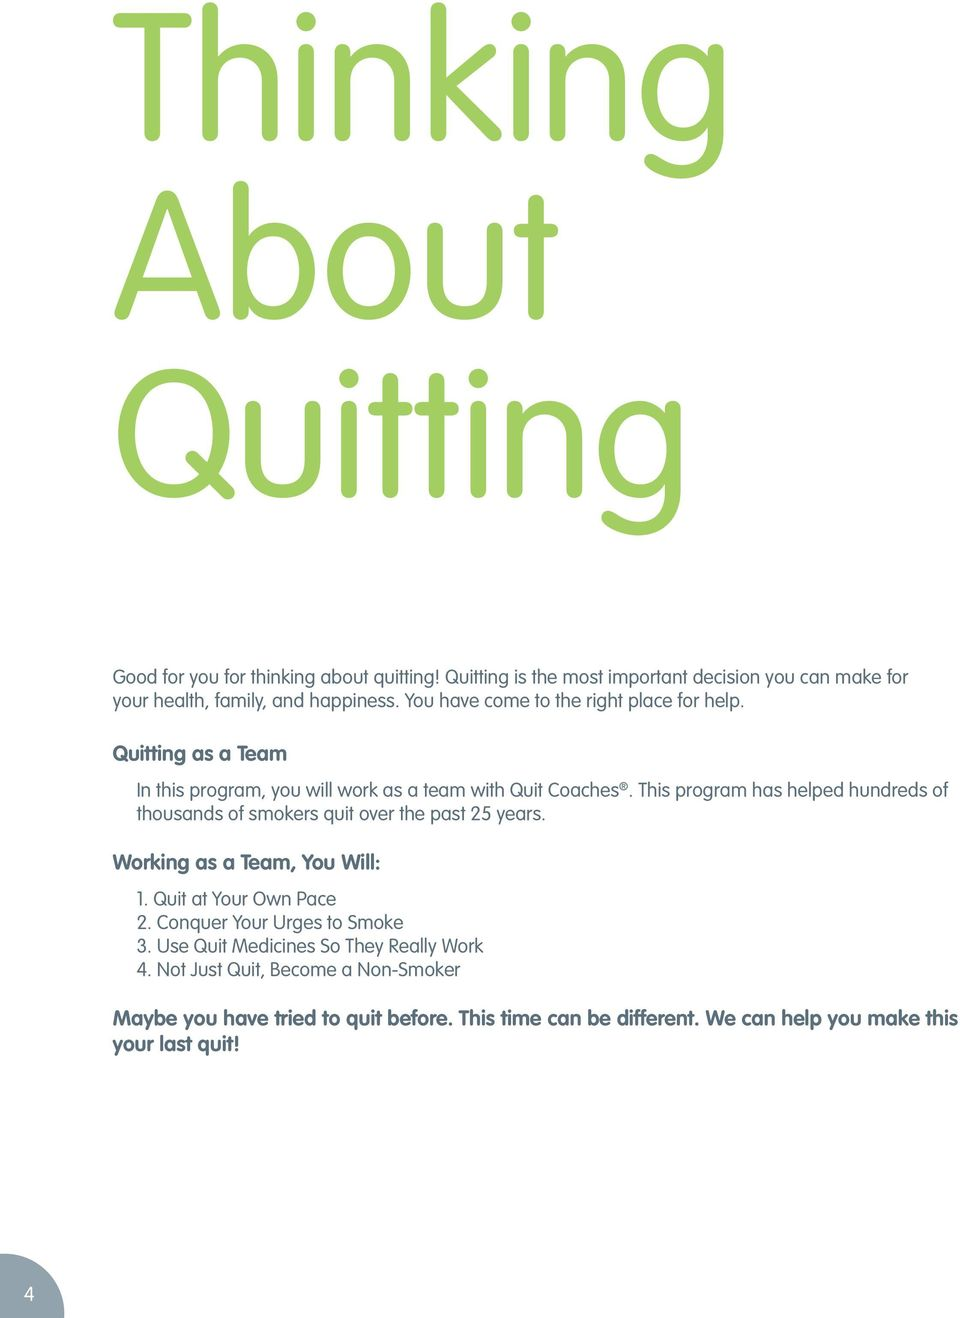 This program has helped hundreds of thousands of smokers quit over the past 25 years. Working as a Team, You Will: 1. Quit at Your Own Pace 2.